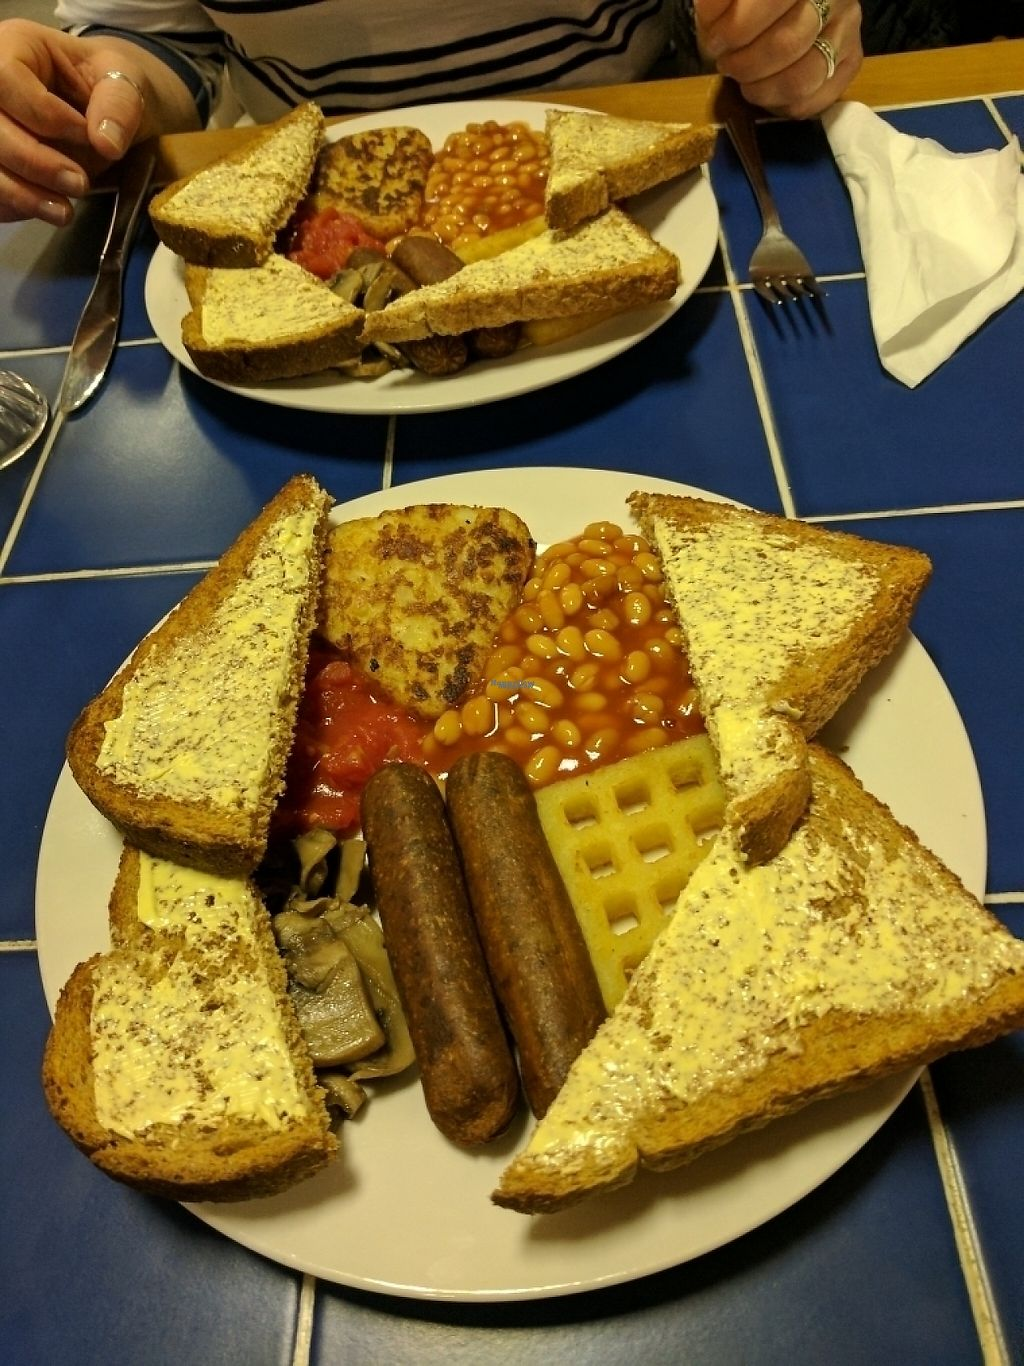 """Photo of Super Natural Kitchen  by <a href=""""/members/profile/FurryFury"""">FurryFury</a> <br/>Great start to the day! <br/> February 25, 2017  - <a href='/contact/abuse/image/74502/230287'>Report</a>"""